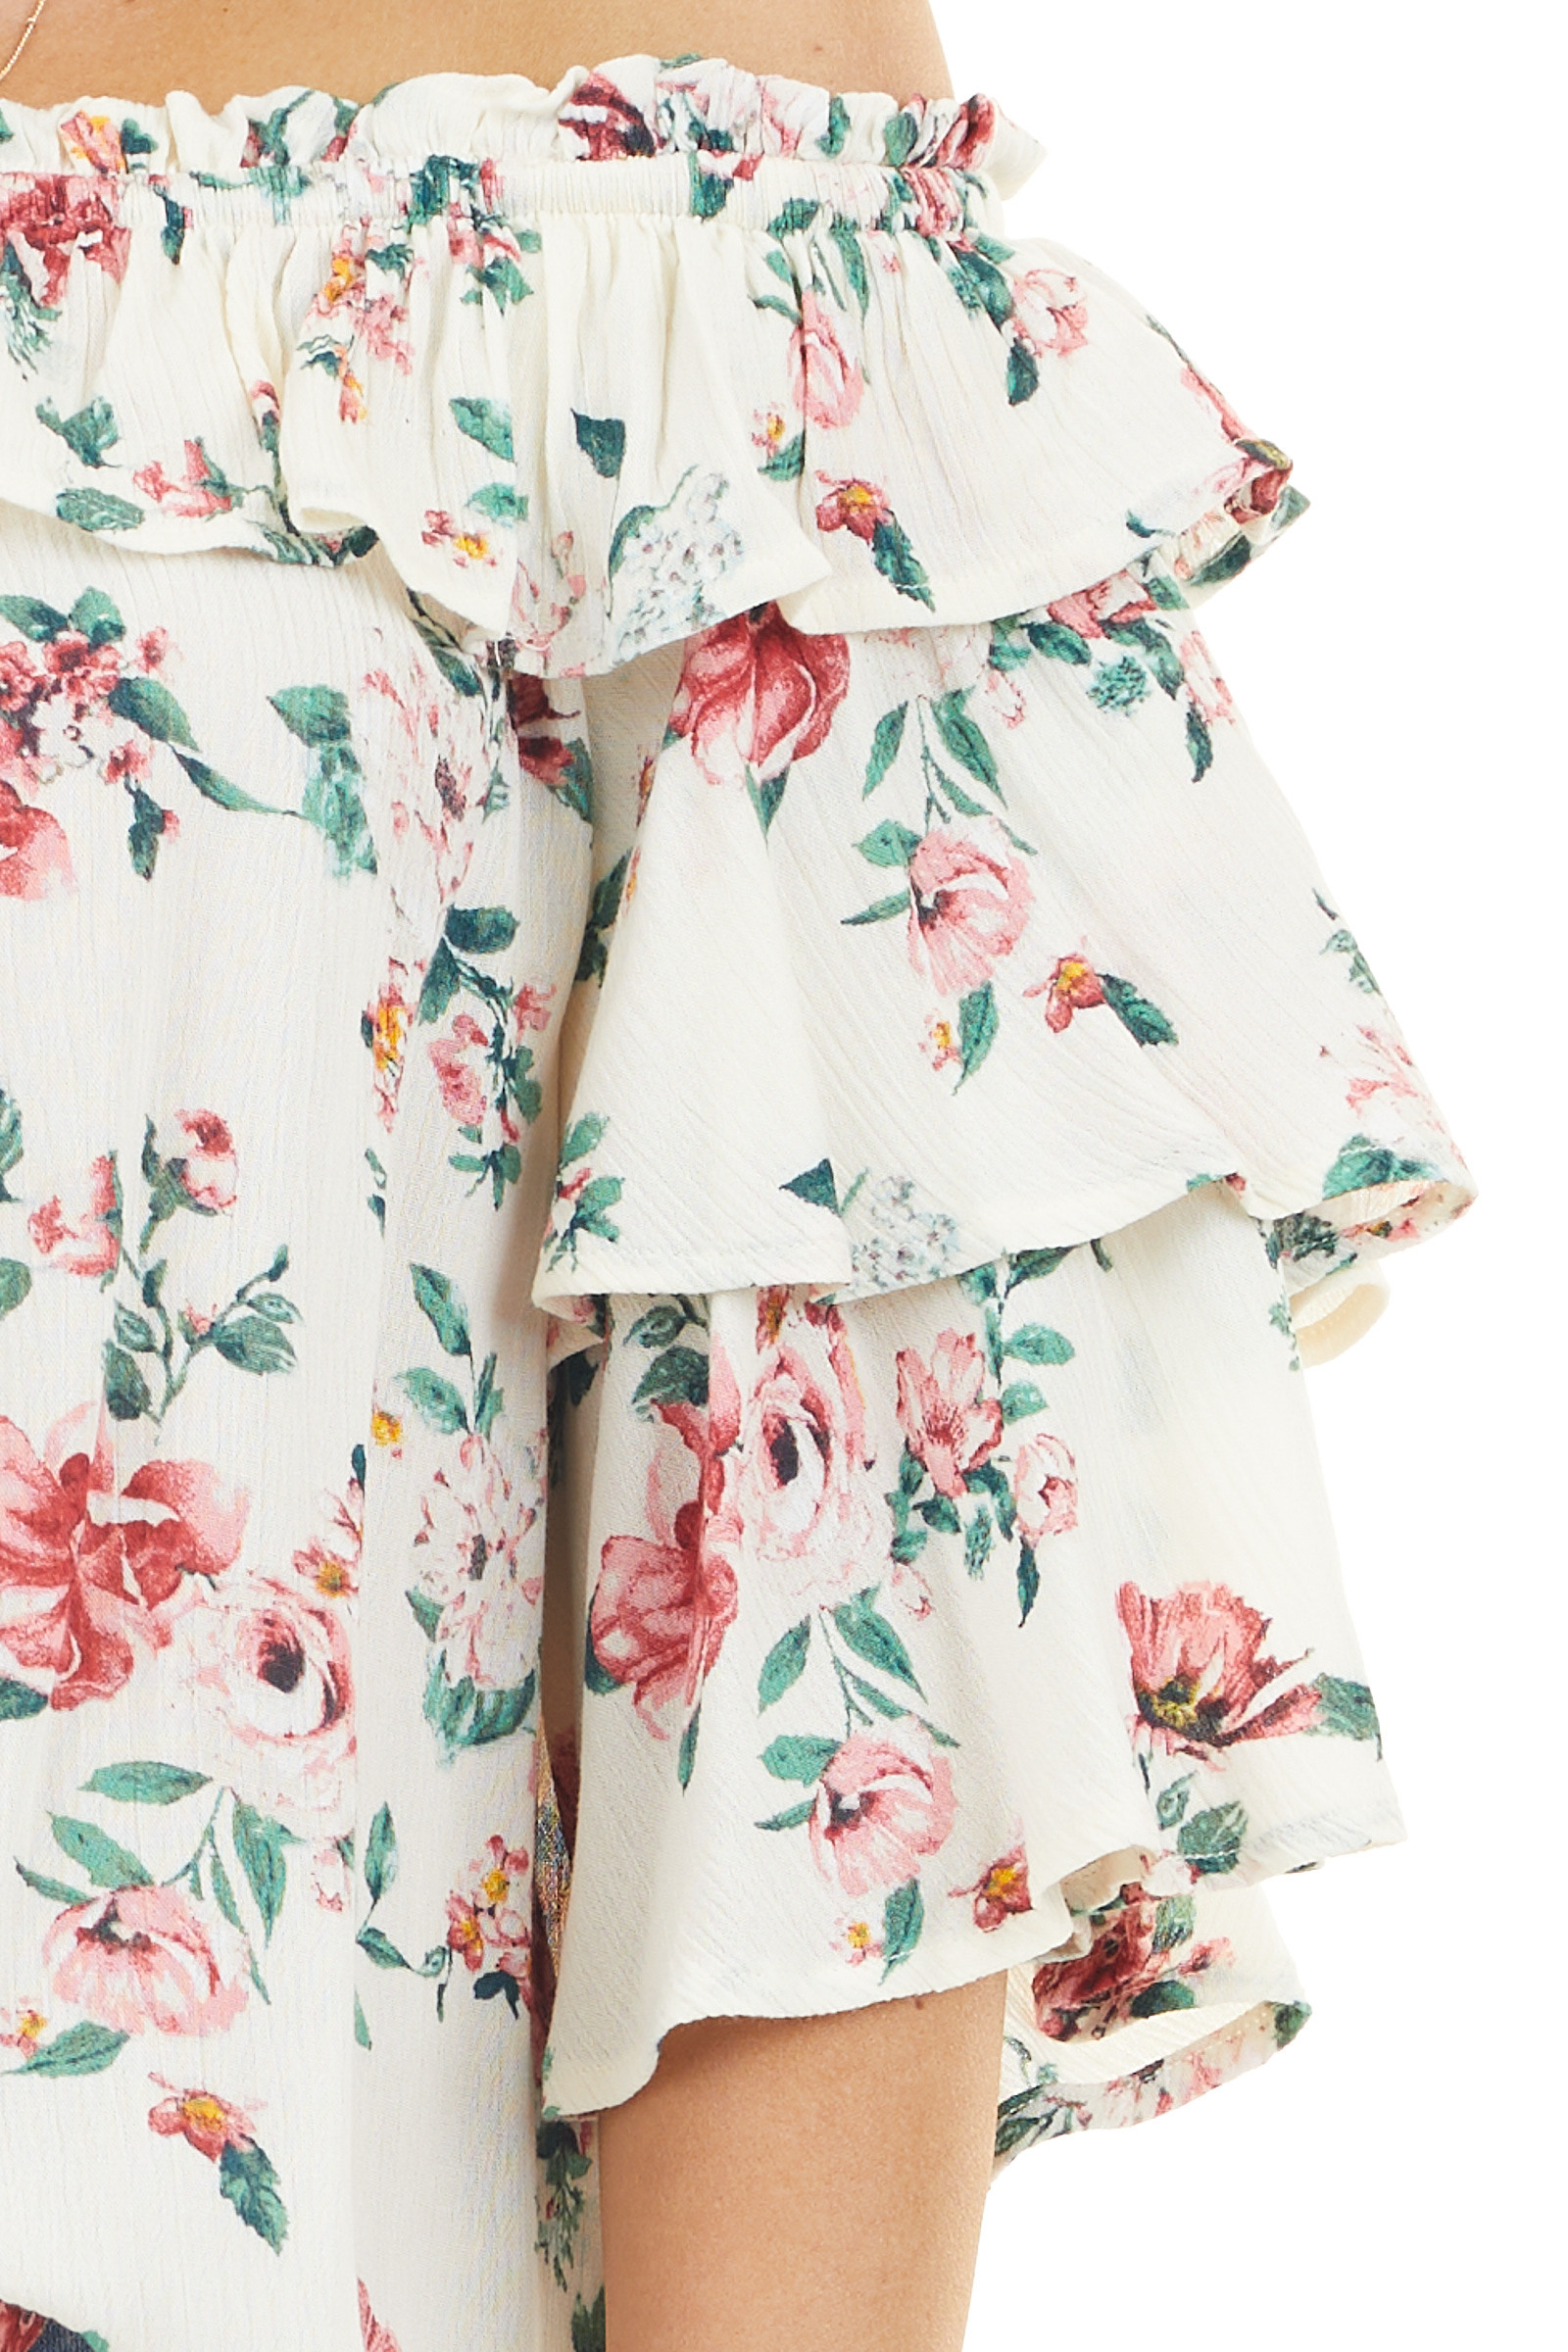 Cream Floral Print Off the Shoulder Top with Ruffle Details